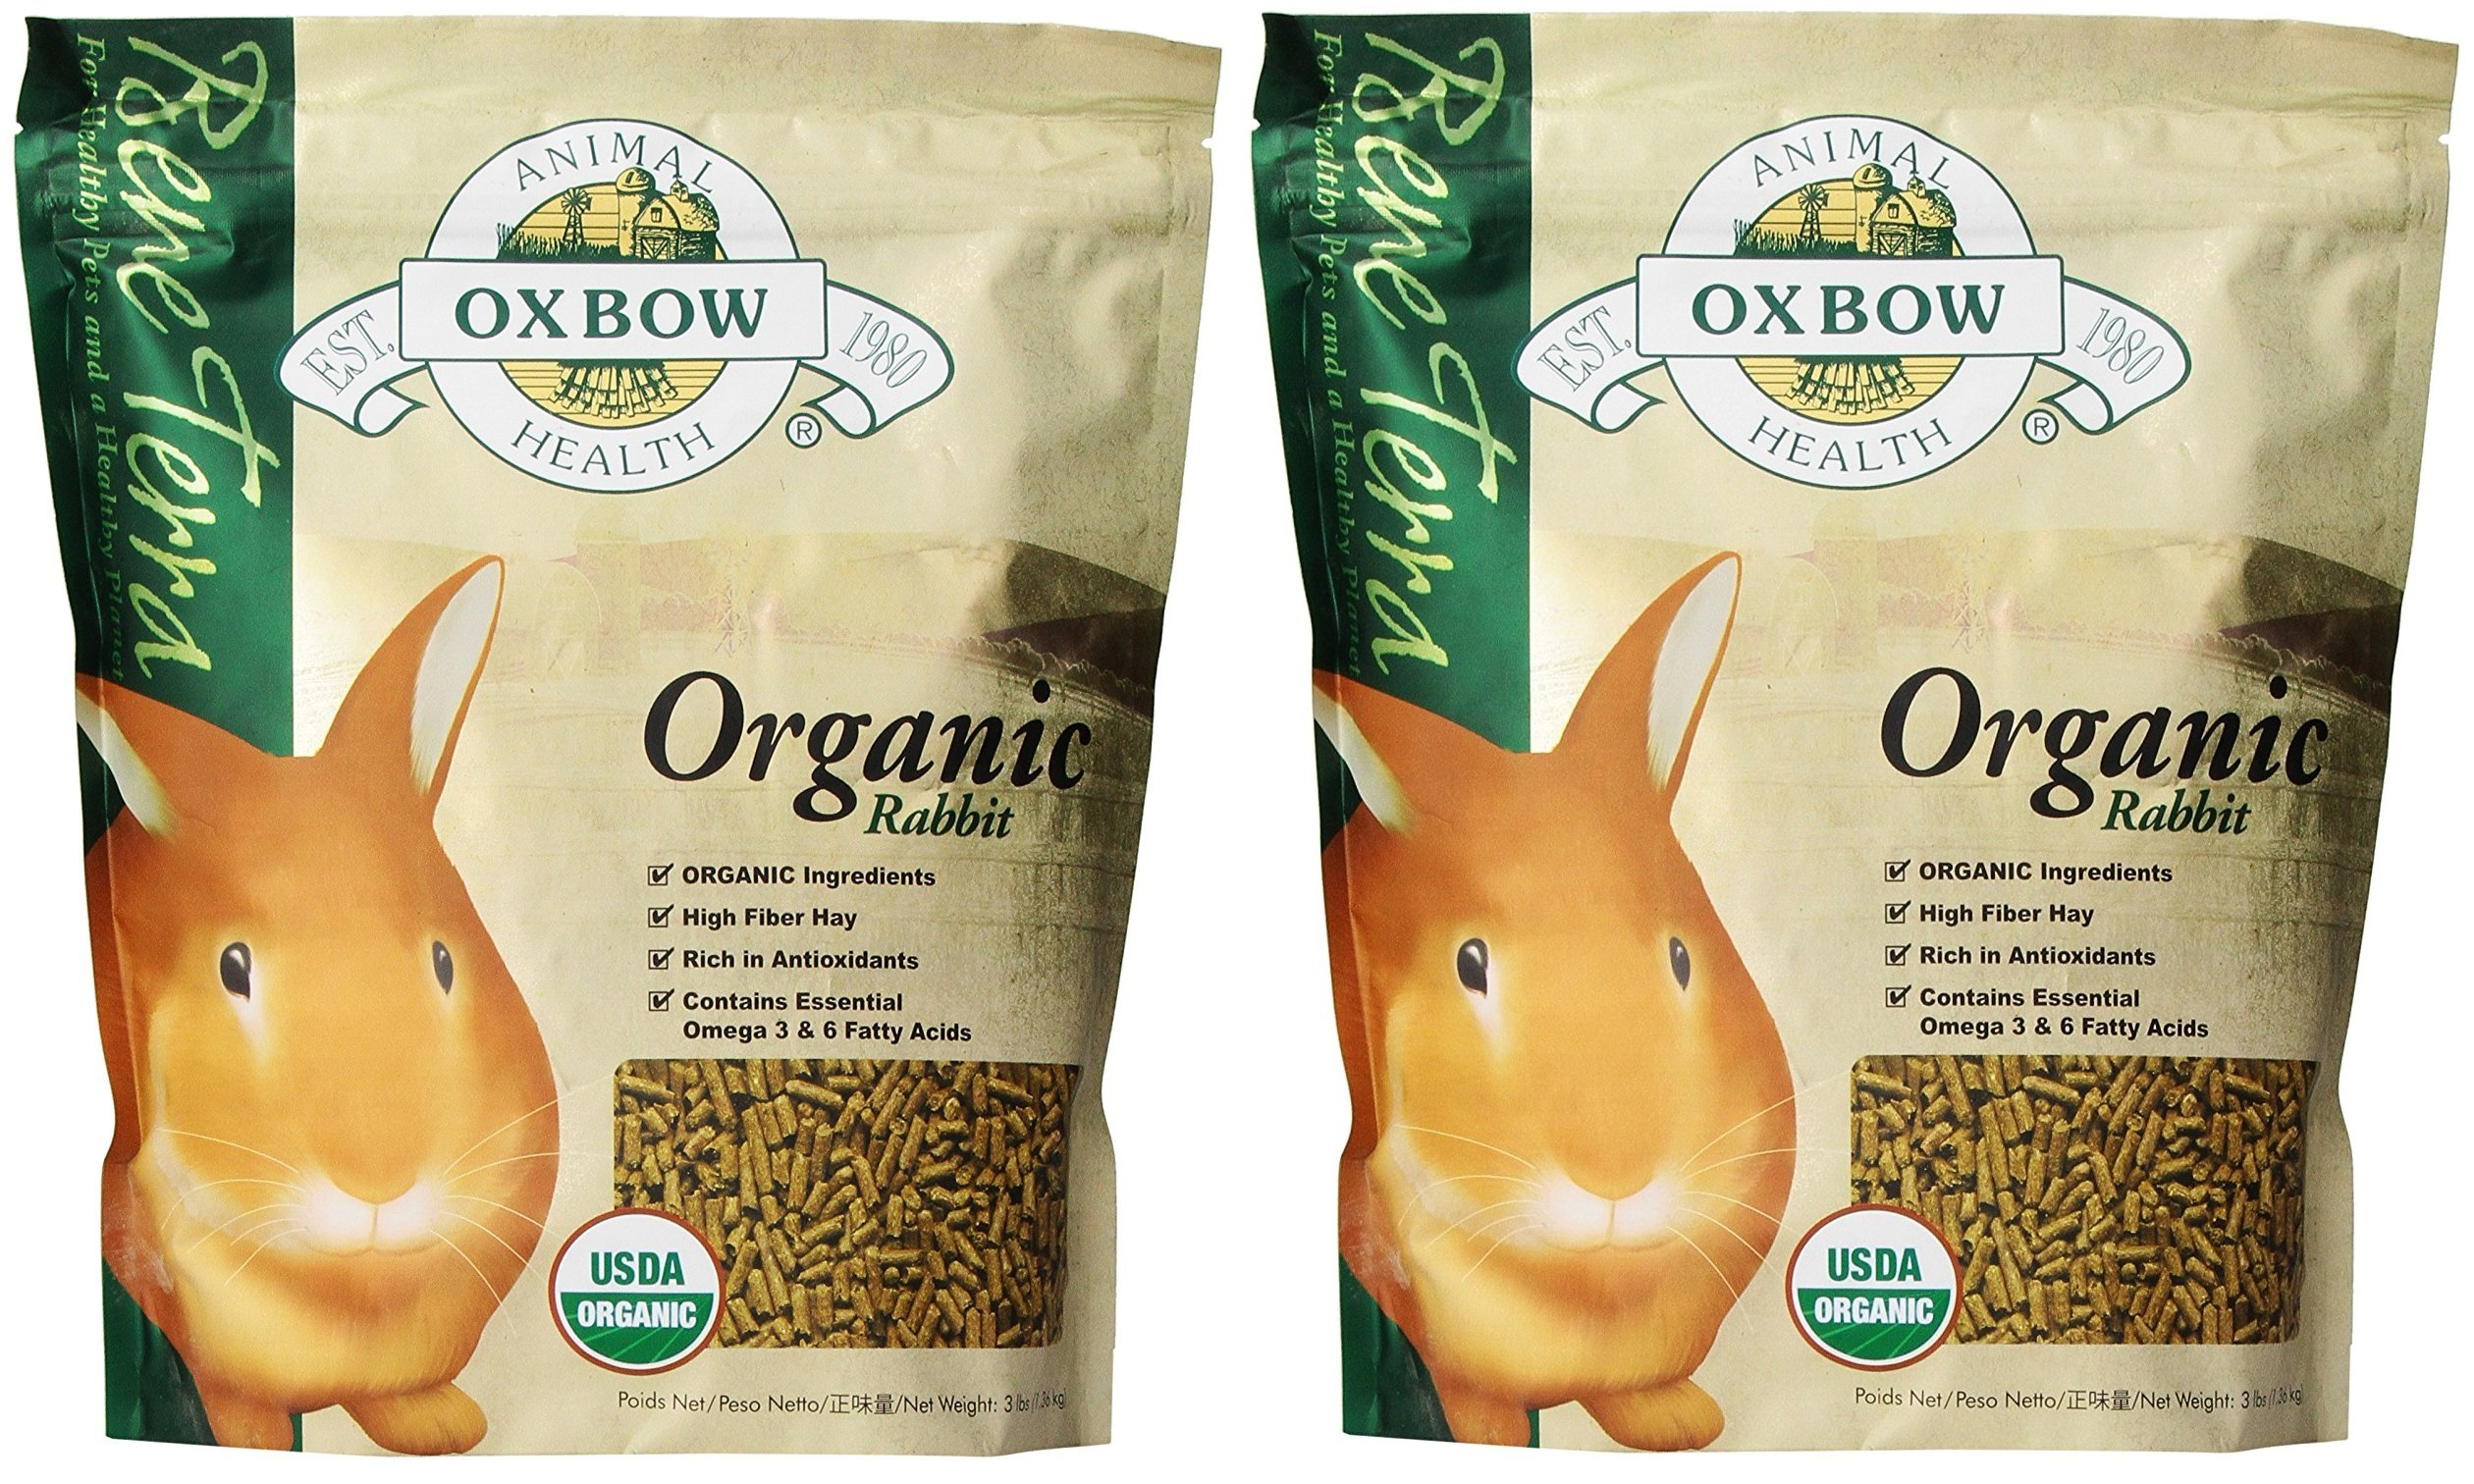 (2 Pack) Oxbow Bene Terra Organic Rabbit Food, 3 lb